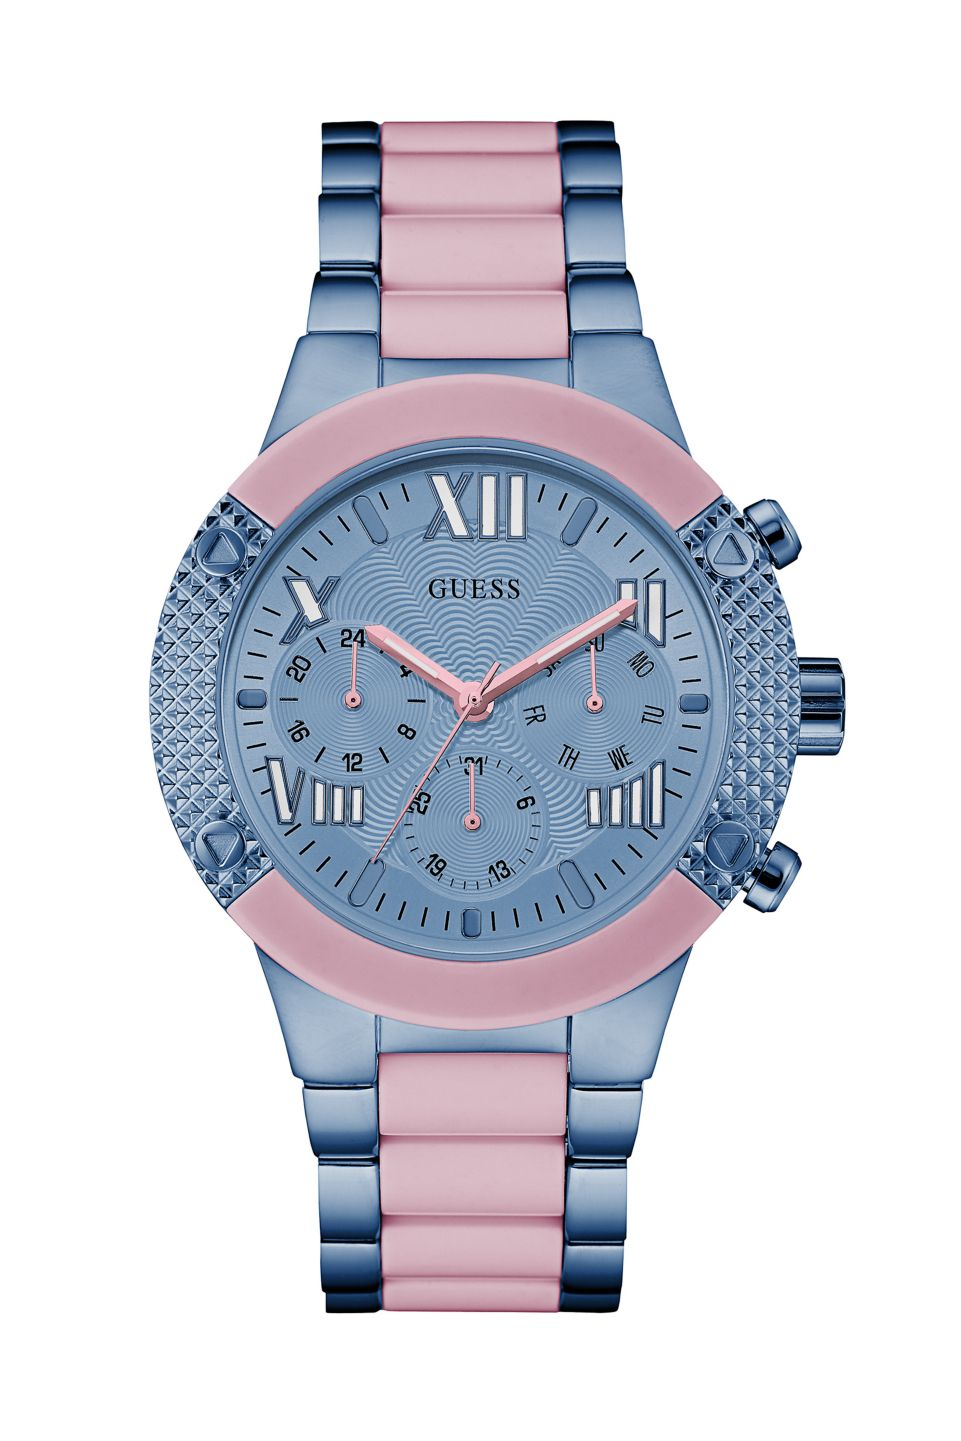 Pink and Blue Show-Stopping Sport Watch   GUESS.com   GUESS   The ... be3b2f6a1e